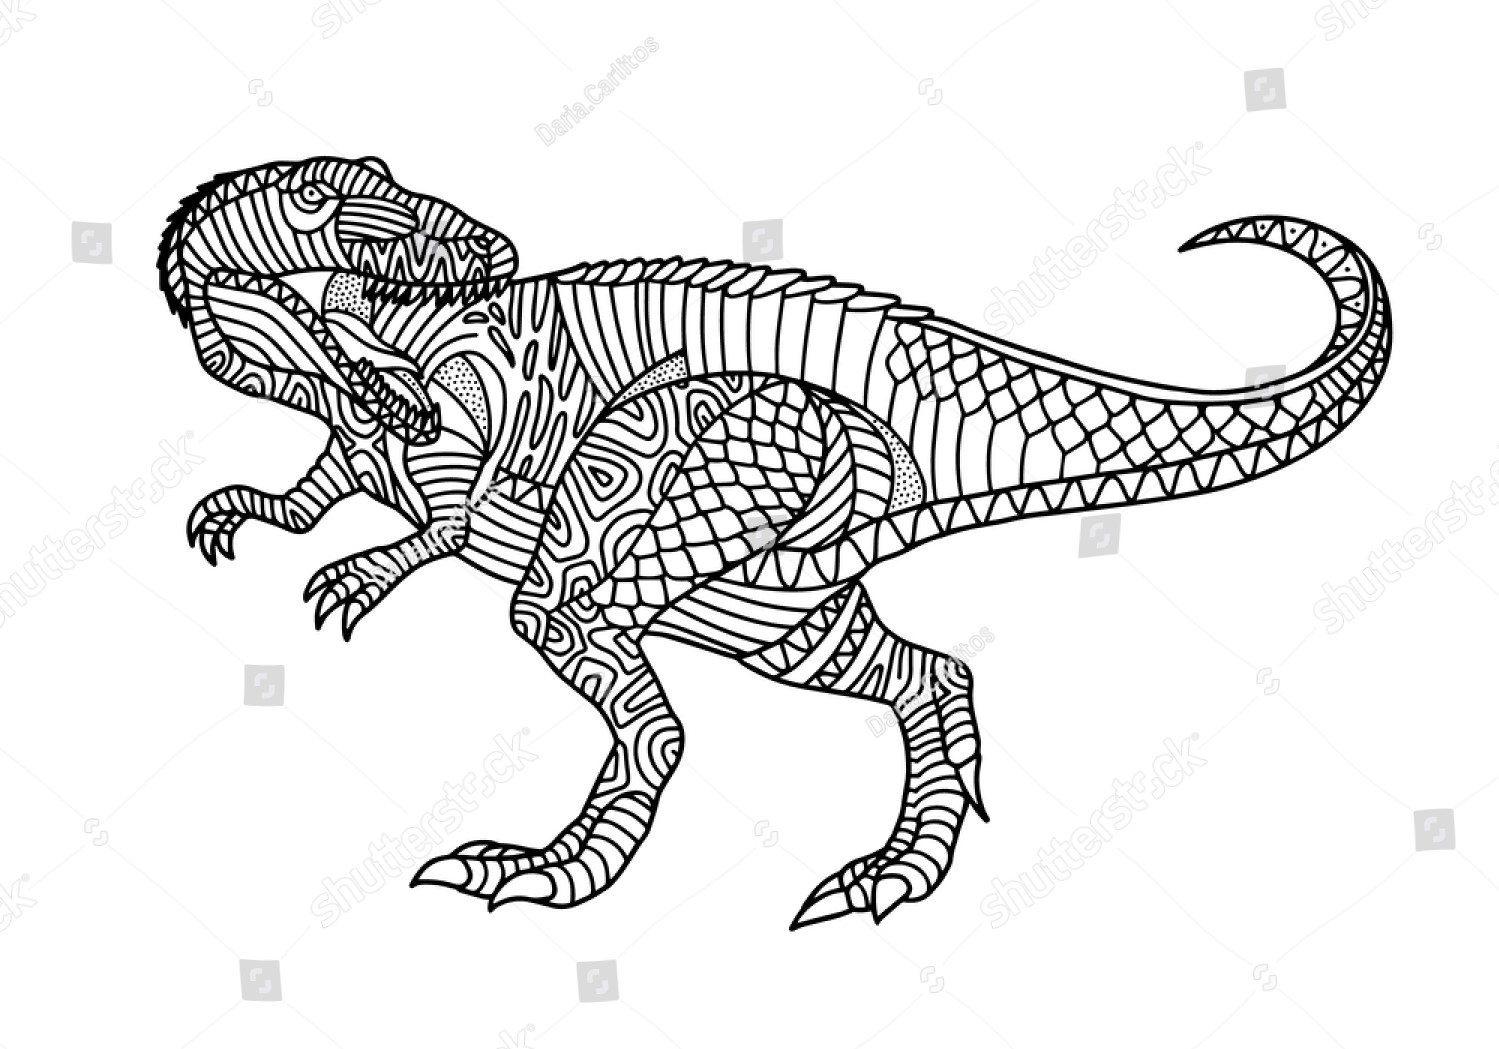 Allosaurus Details Coloring Page